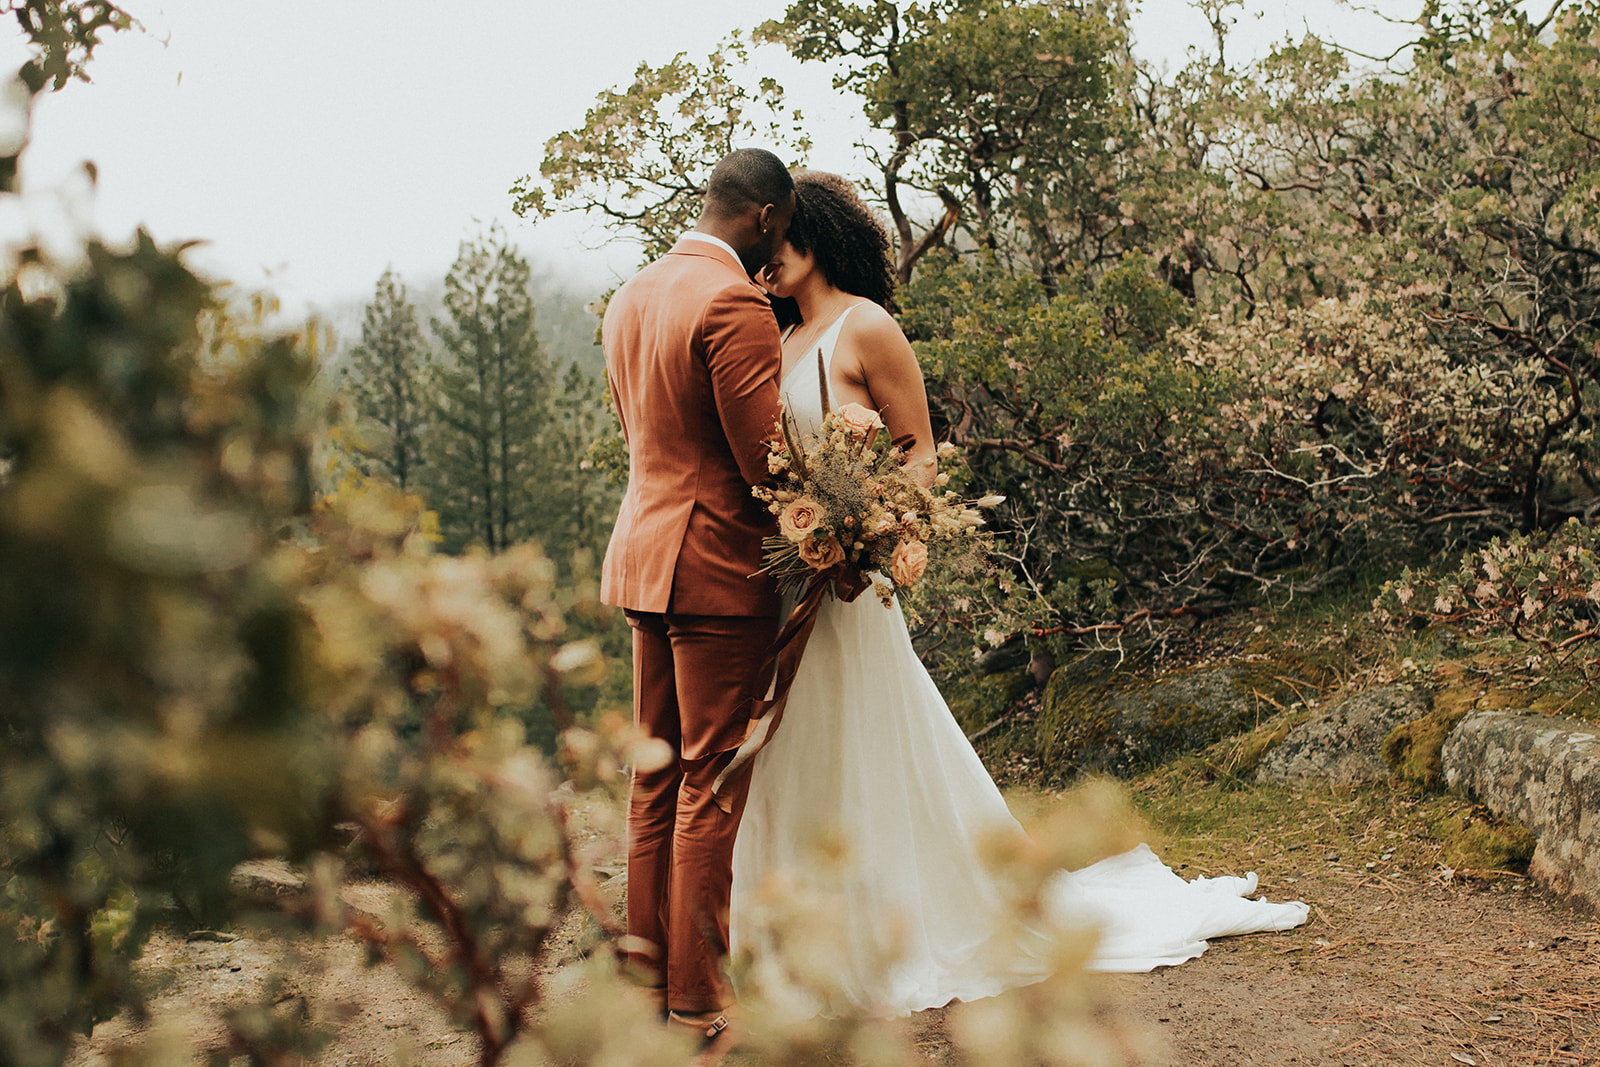 Yosemite_Elopement_Hannah_Alena_Photo_Portland_Wedding_Photographer-100.jpg